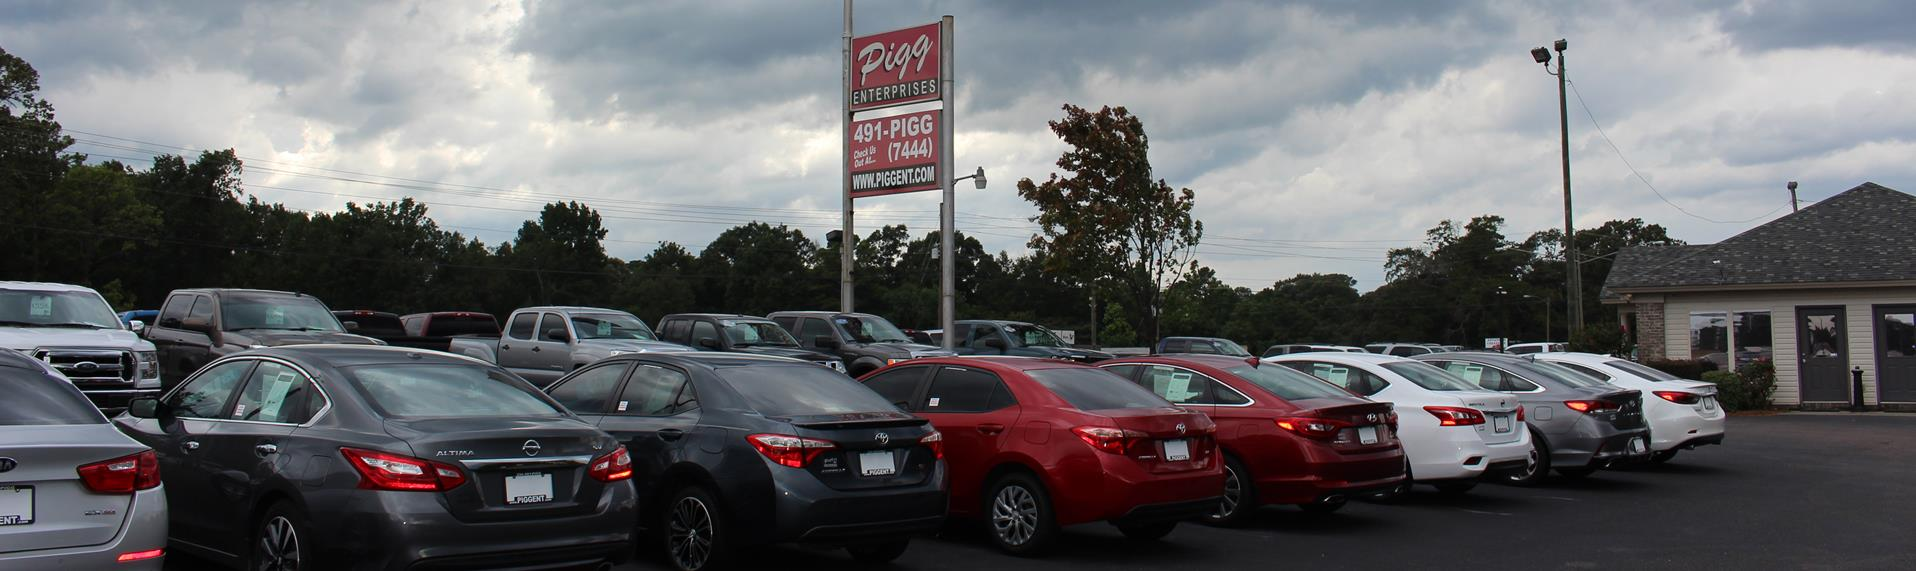 Used Cars And Trucks For Sale In Alabama - GeloManias